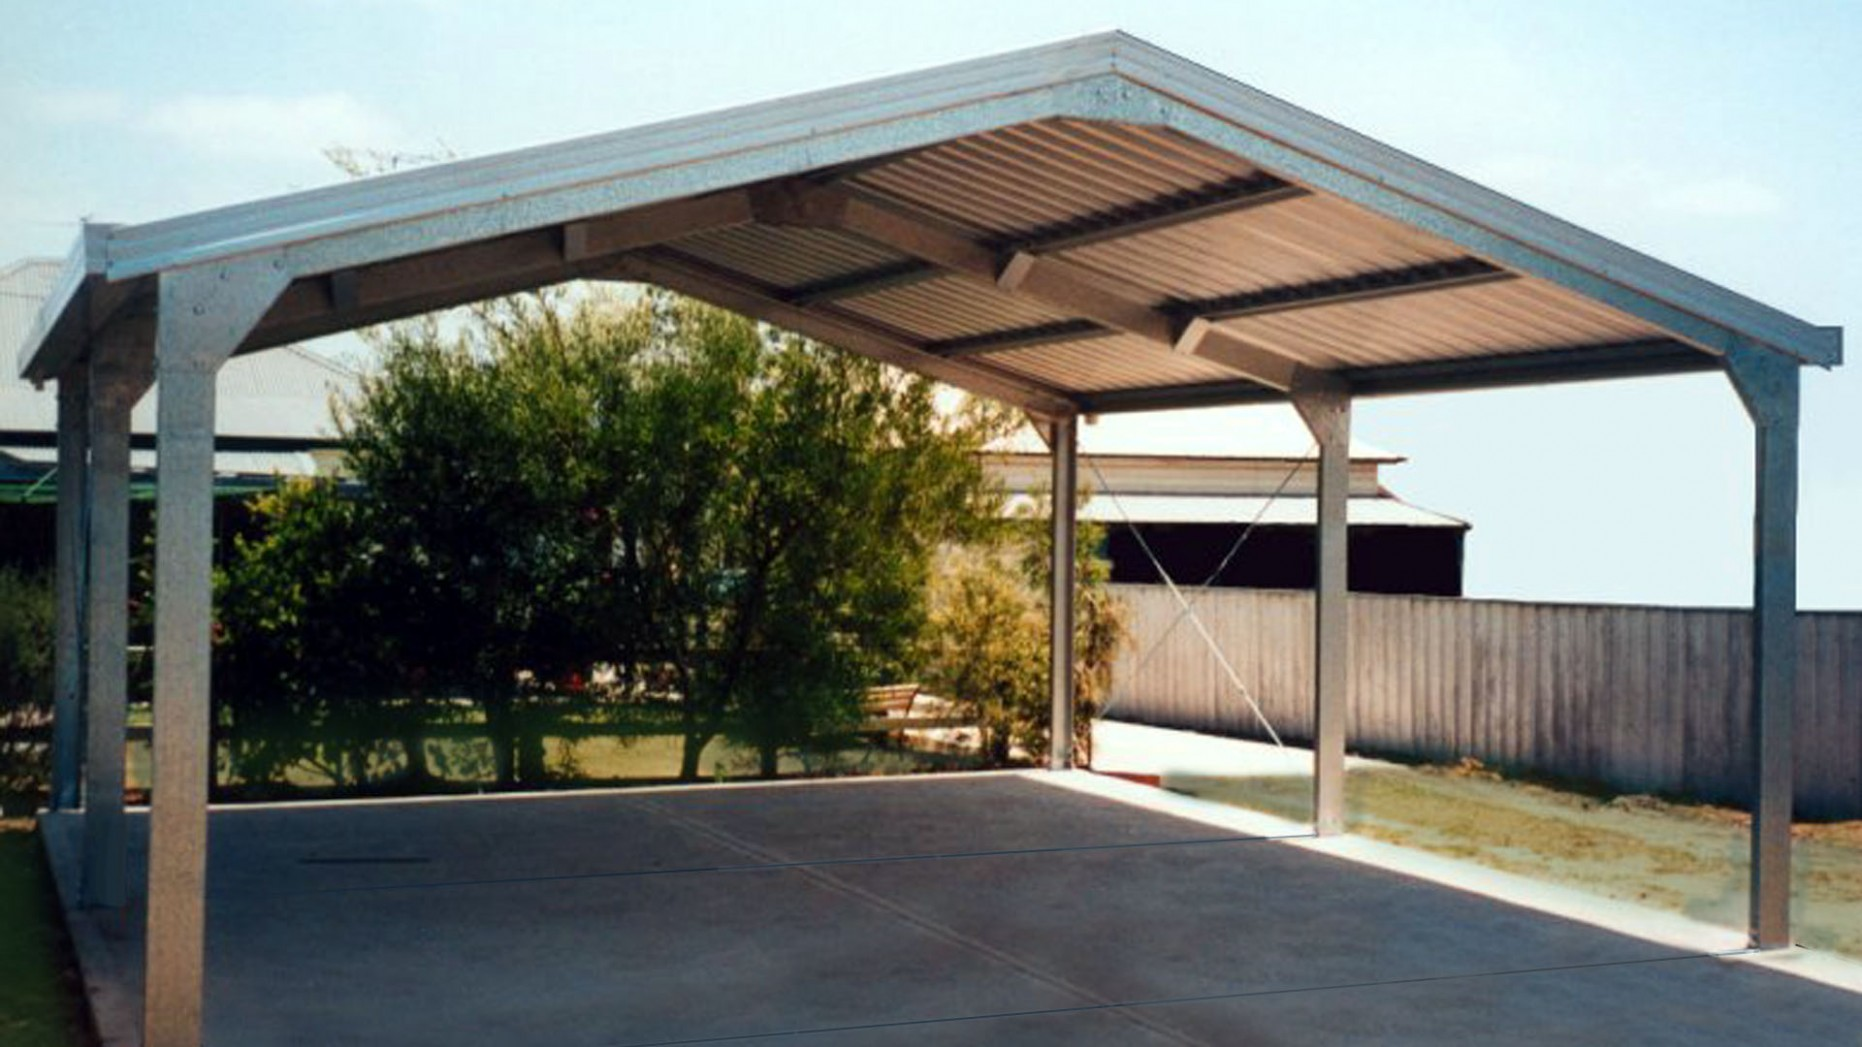 1517632593-best-solutions-of-carports-metal-carports-for-sale-craigslist-used-carports-for-sale.jpg